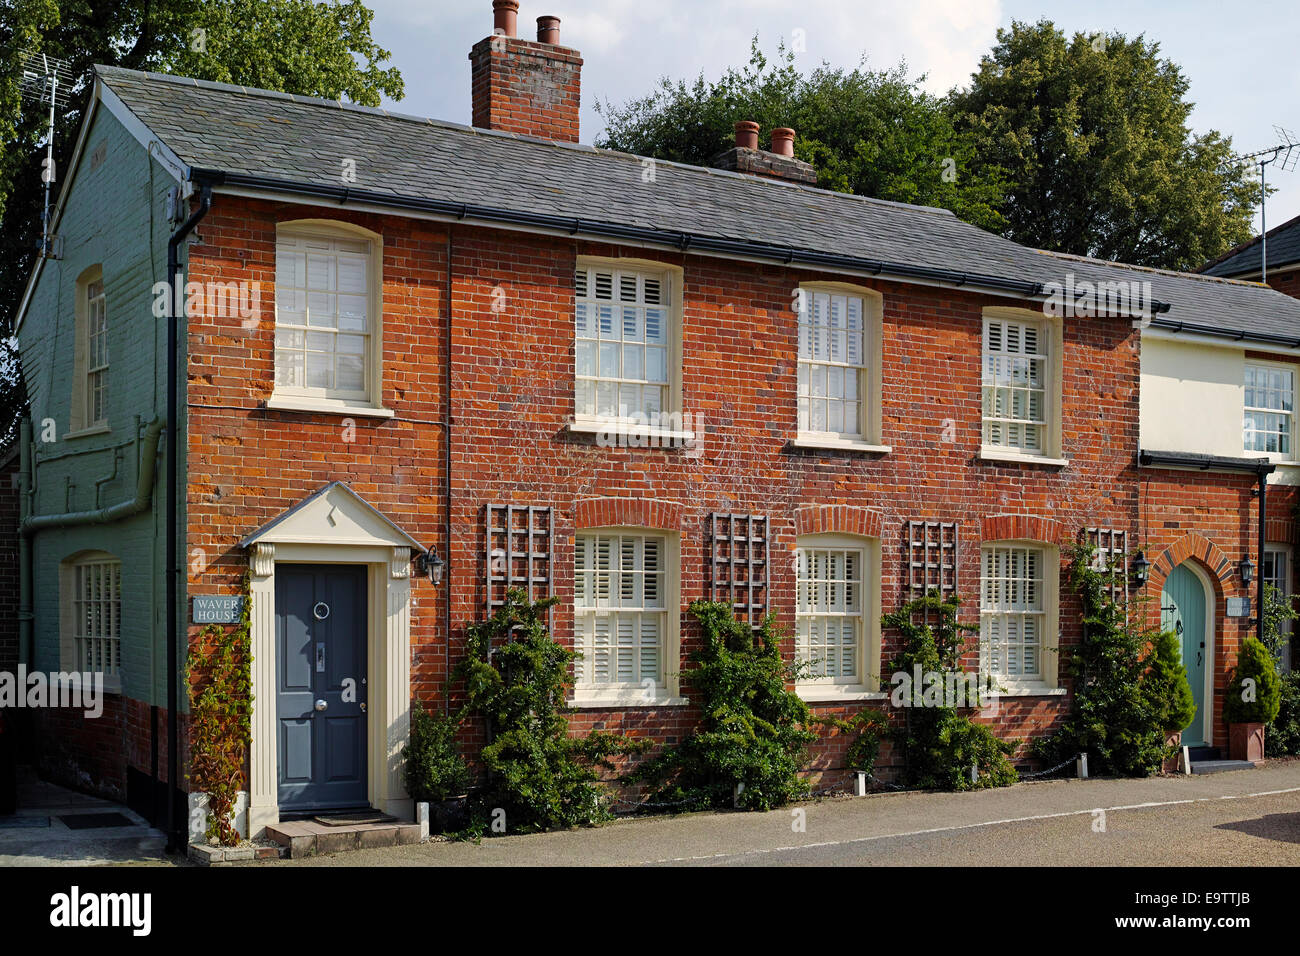 Terraced Red Brick Houses In Cavendish Suffolk England